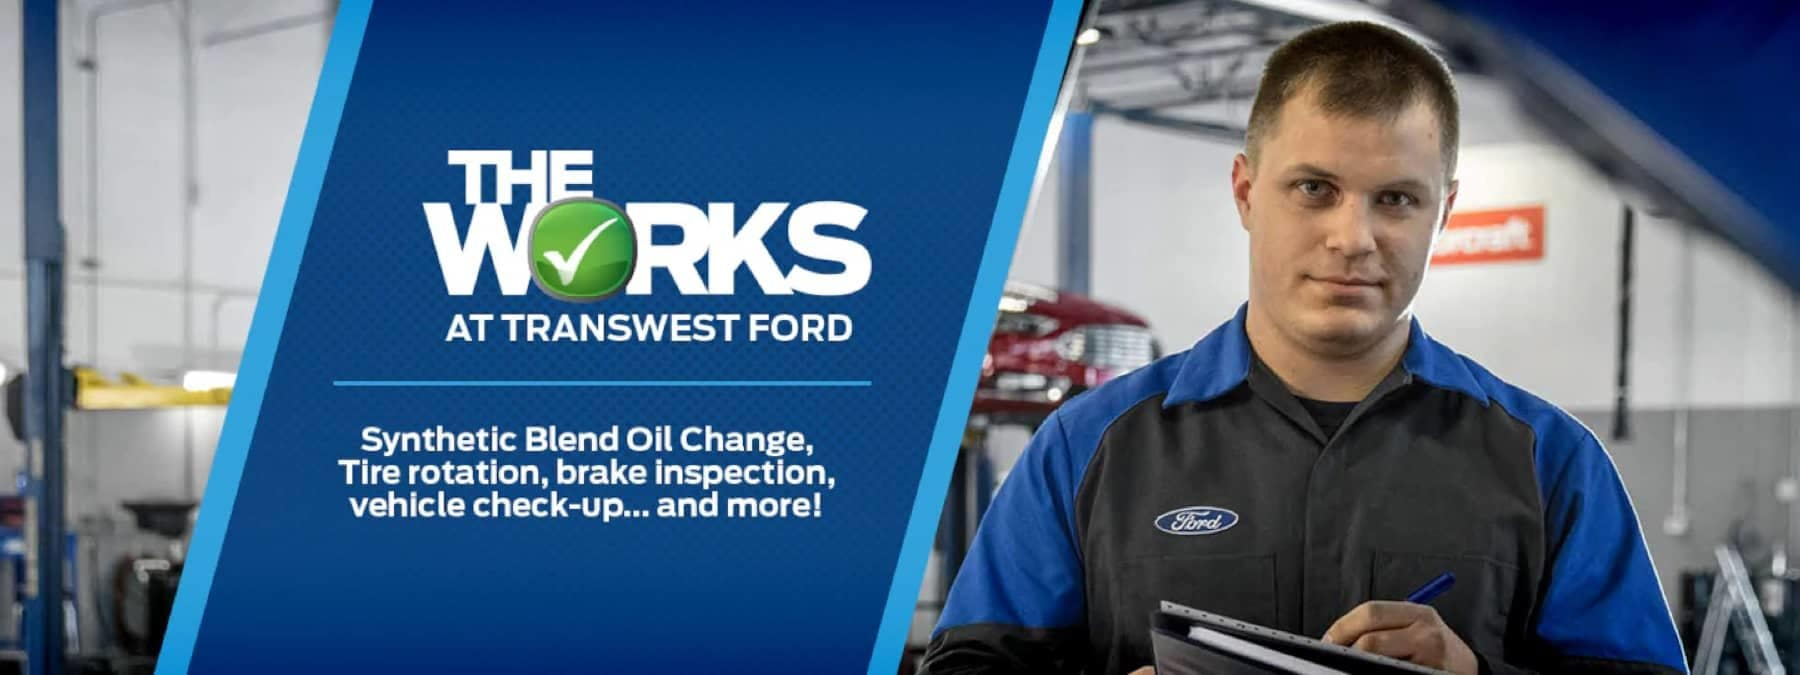 The Works - At Transwest Ford - click to learn more